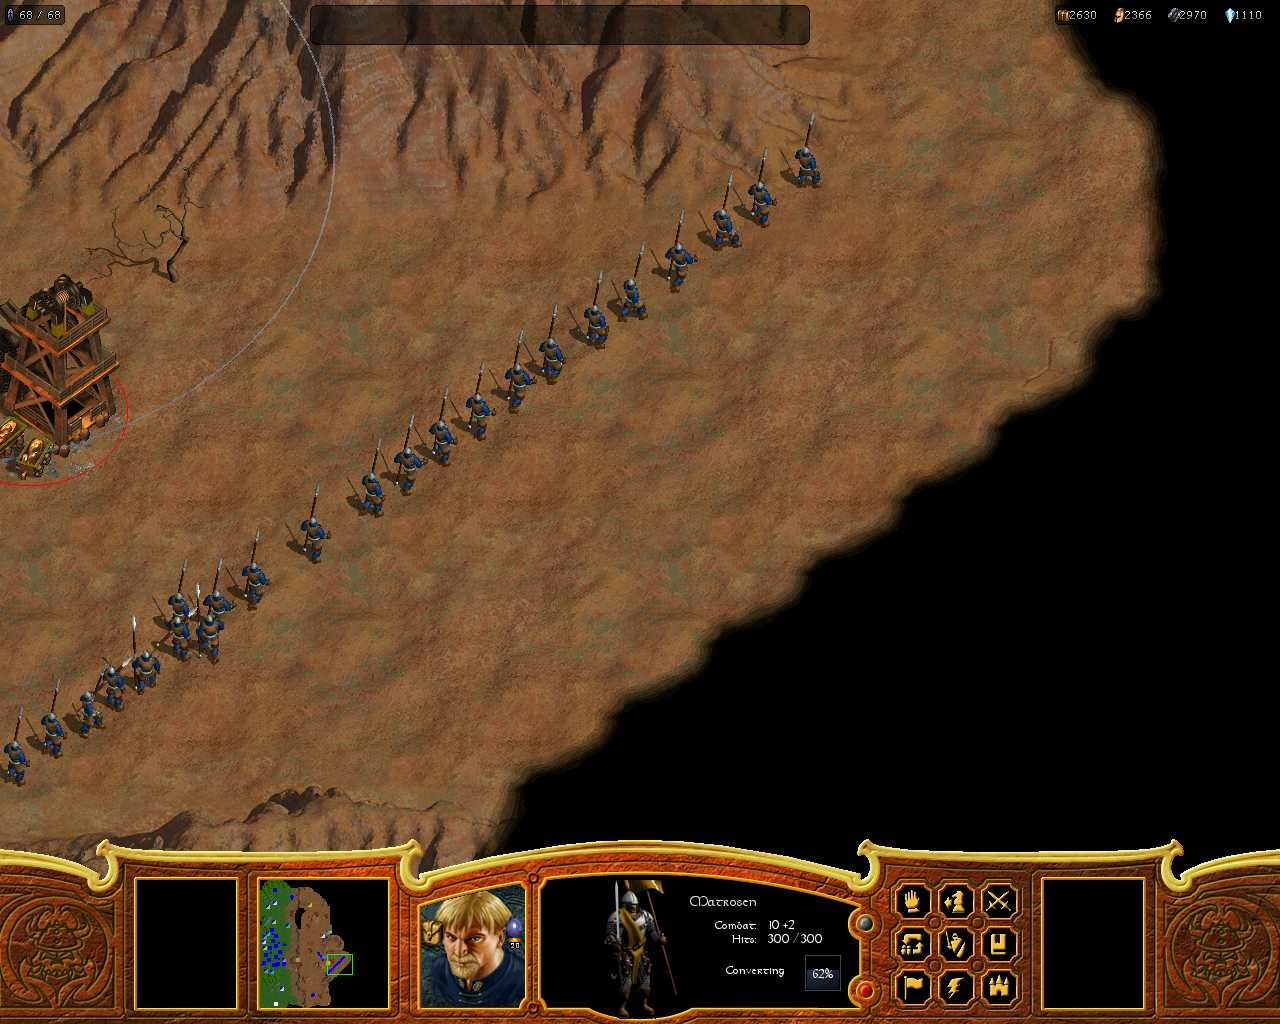 Warlords: Battlecry II Windows Lots of Pikemen